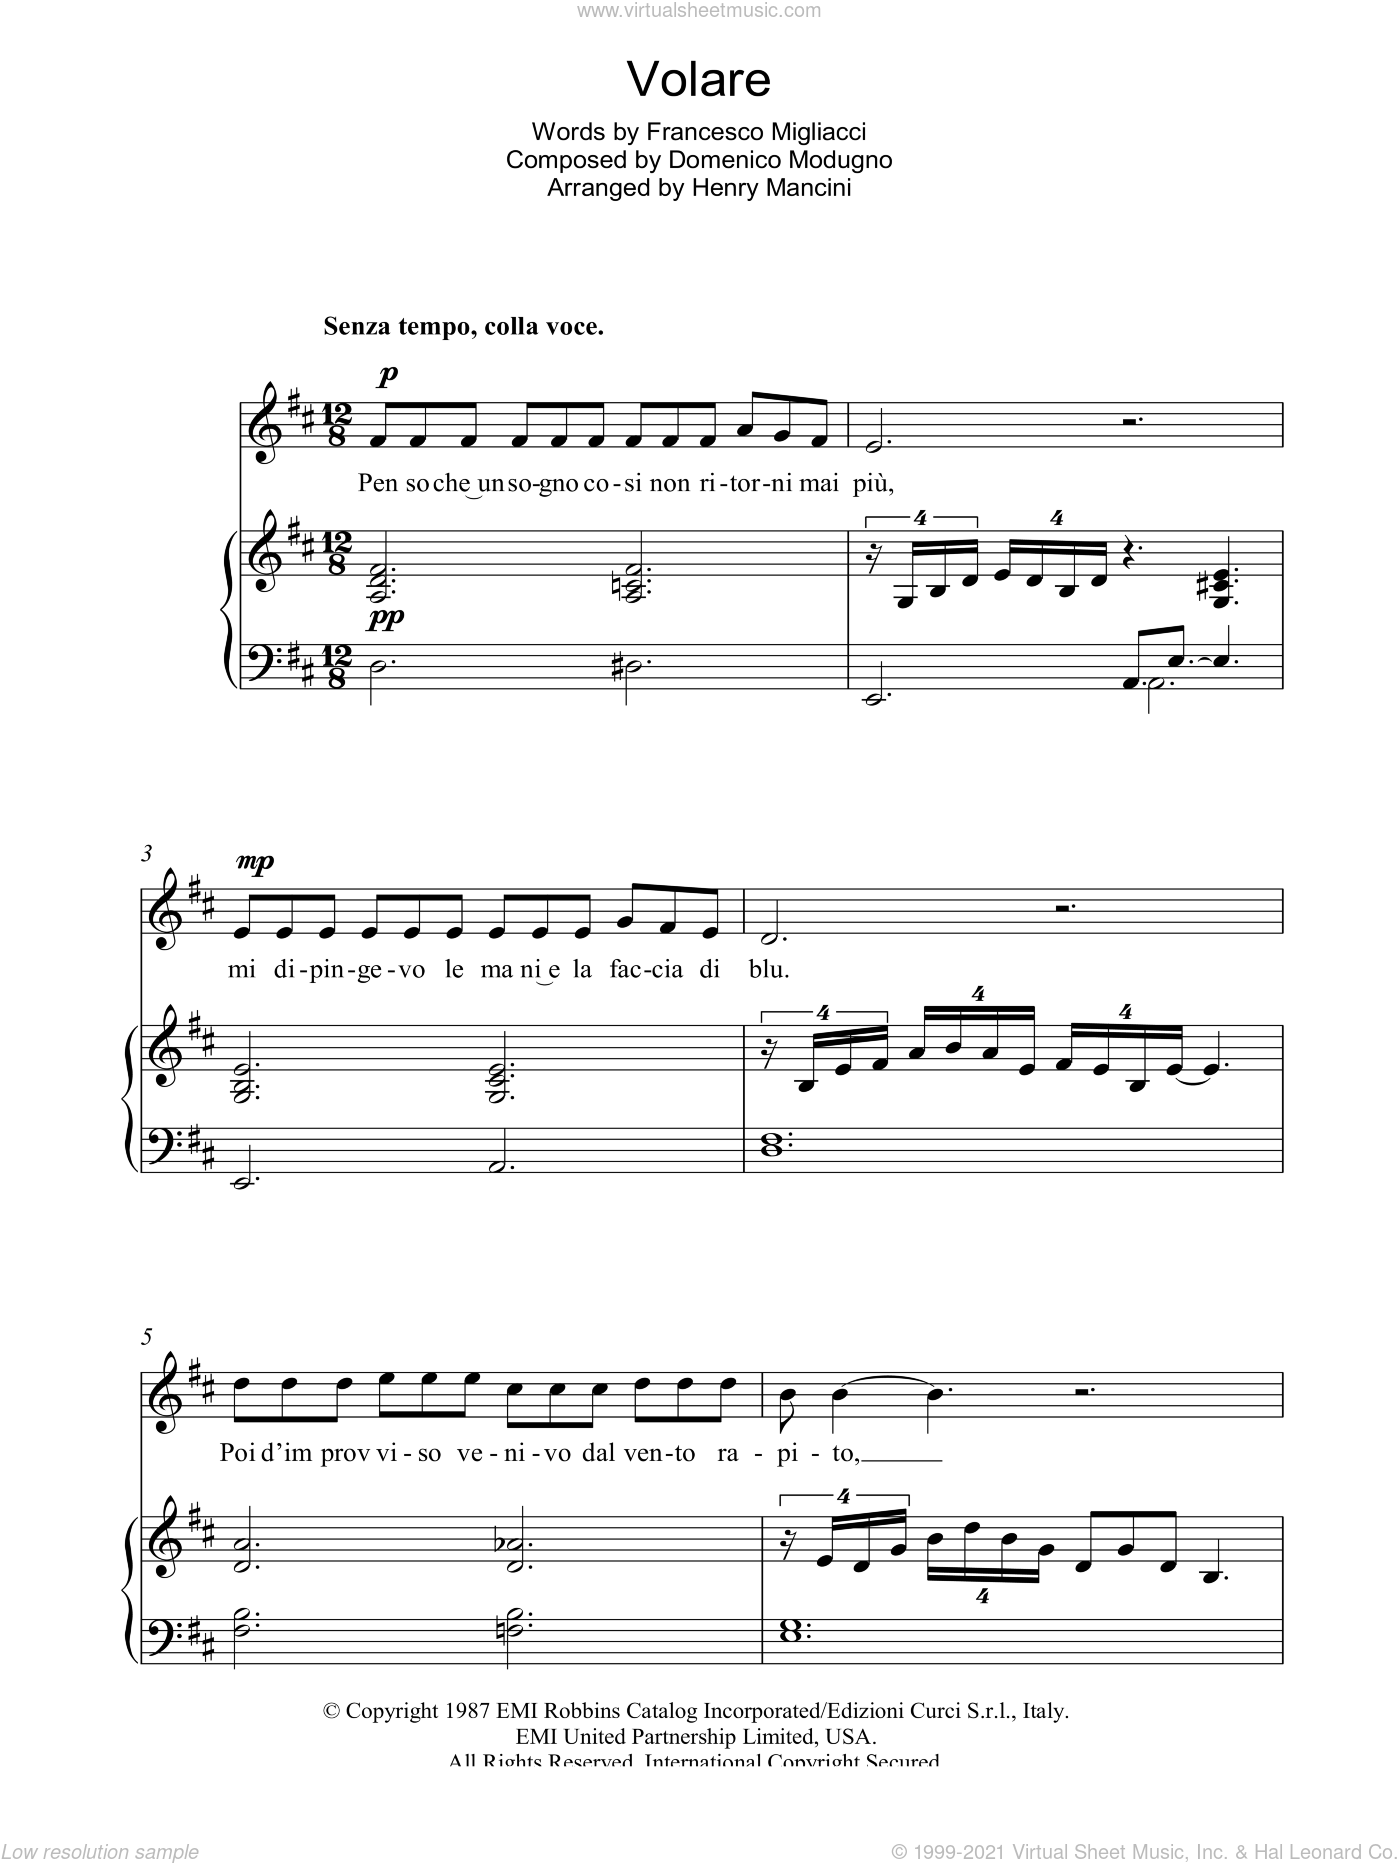 Volare (Nel Blu, Dipinto Di Blu) sheet music for voice, piano or guitar by Domenico Modugno